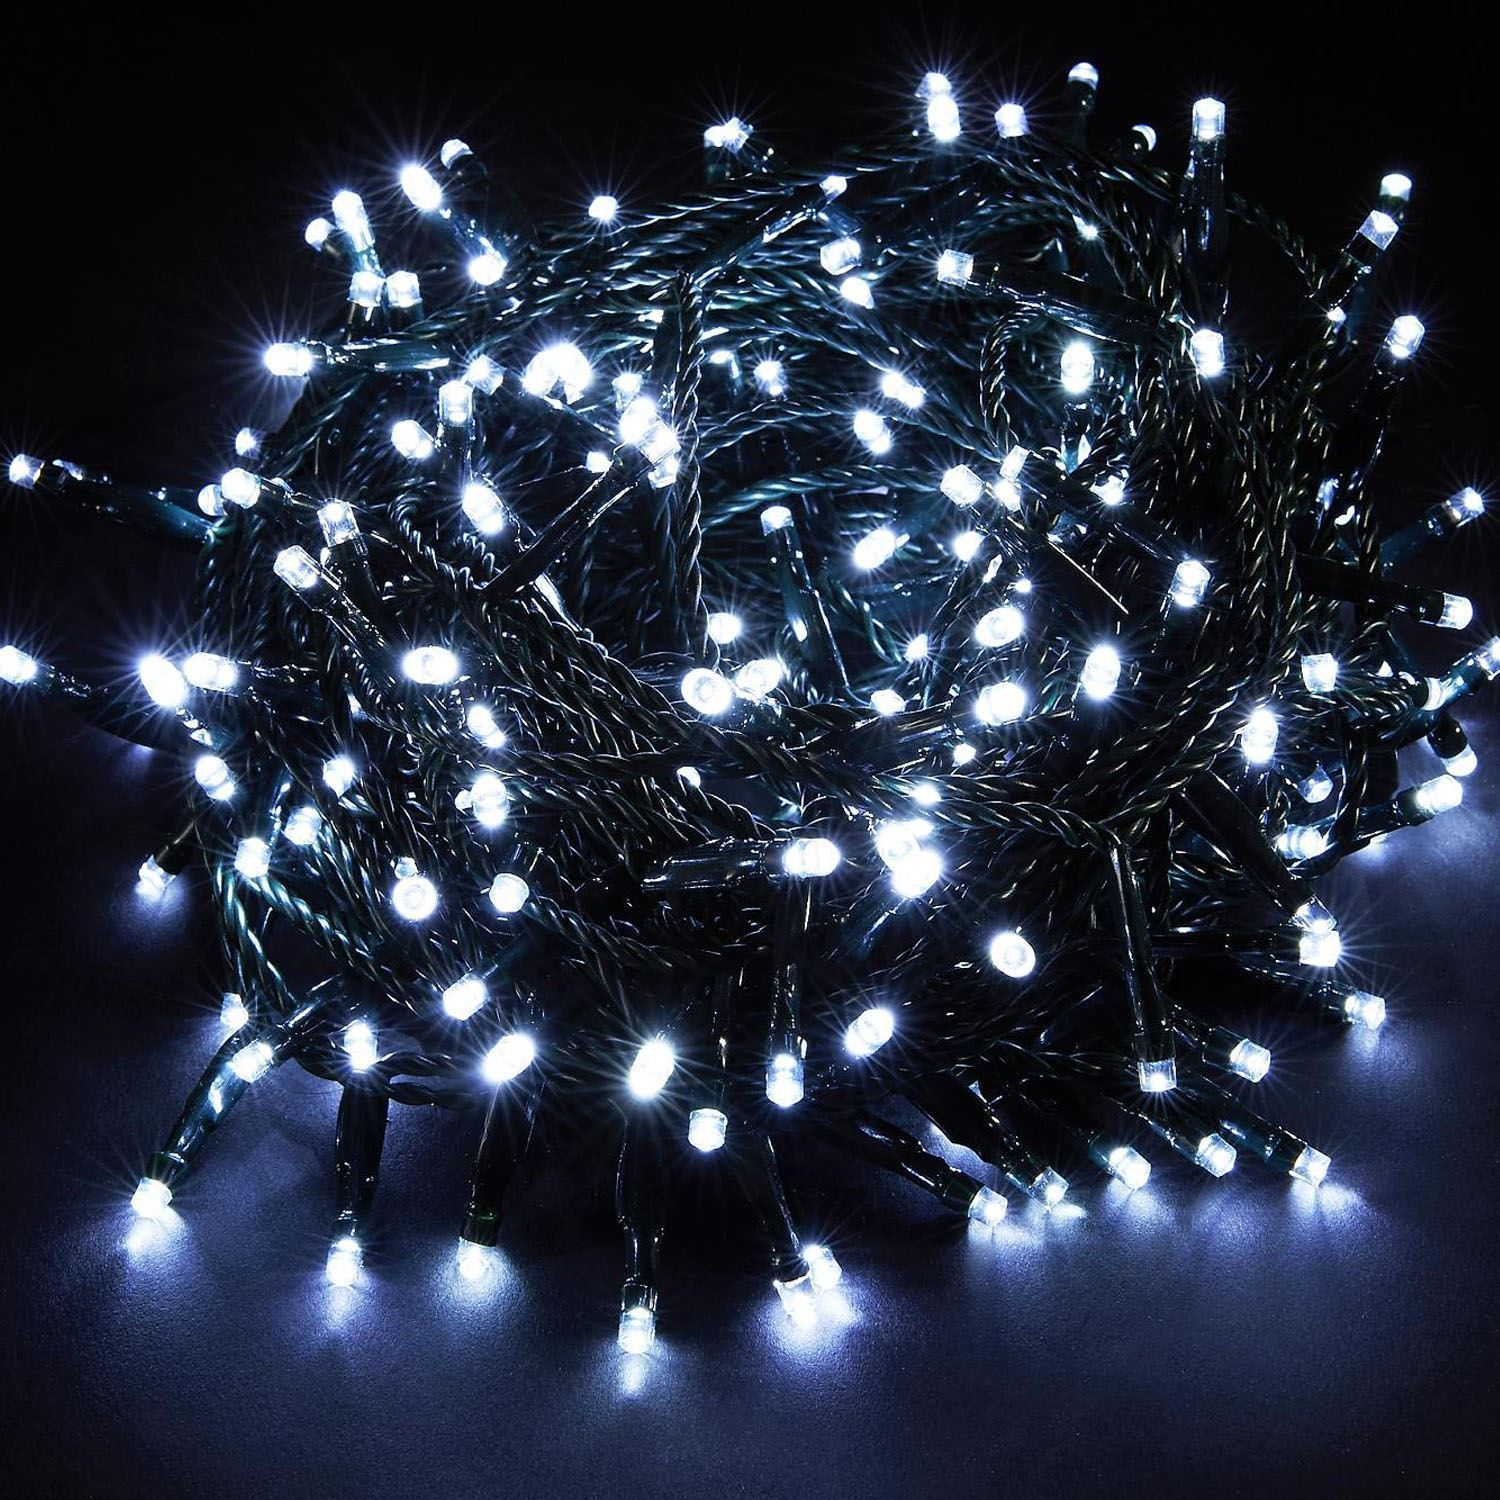 Chaser Christmas Lights.Details About White Chaser 100 Led Fairy String Xmas Christmas Wedding Party Lighting